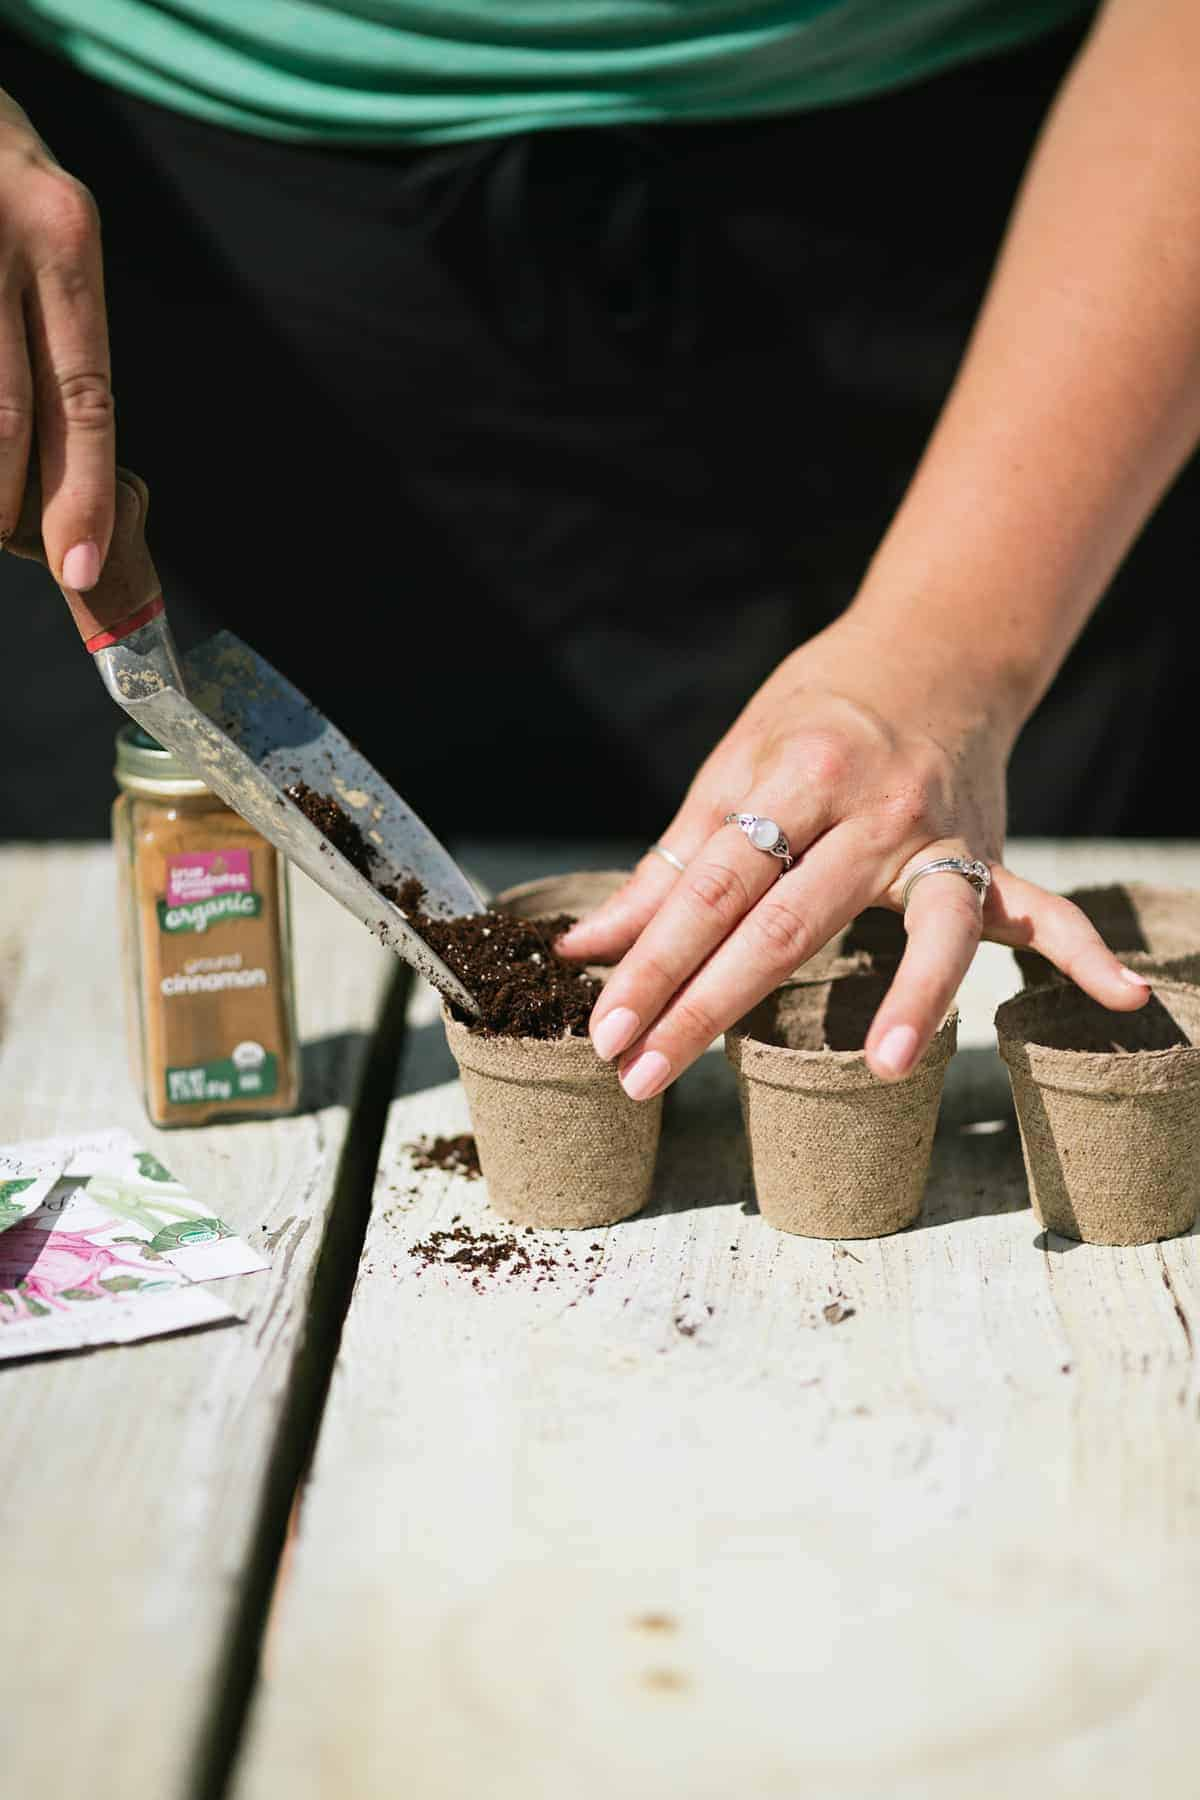 Demonstrating how to start seeds indoors: a trowel scoops dirt into peat pots, with seed packets and cinnamon nearby